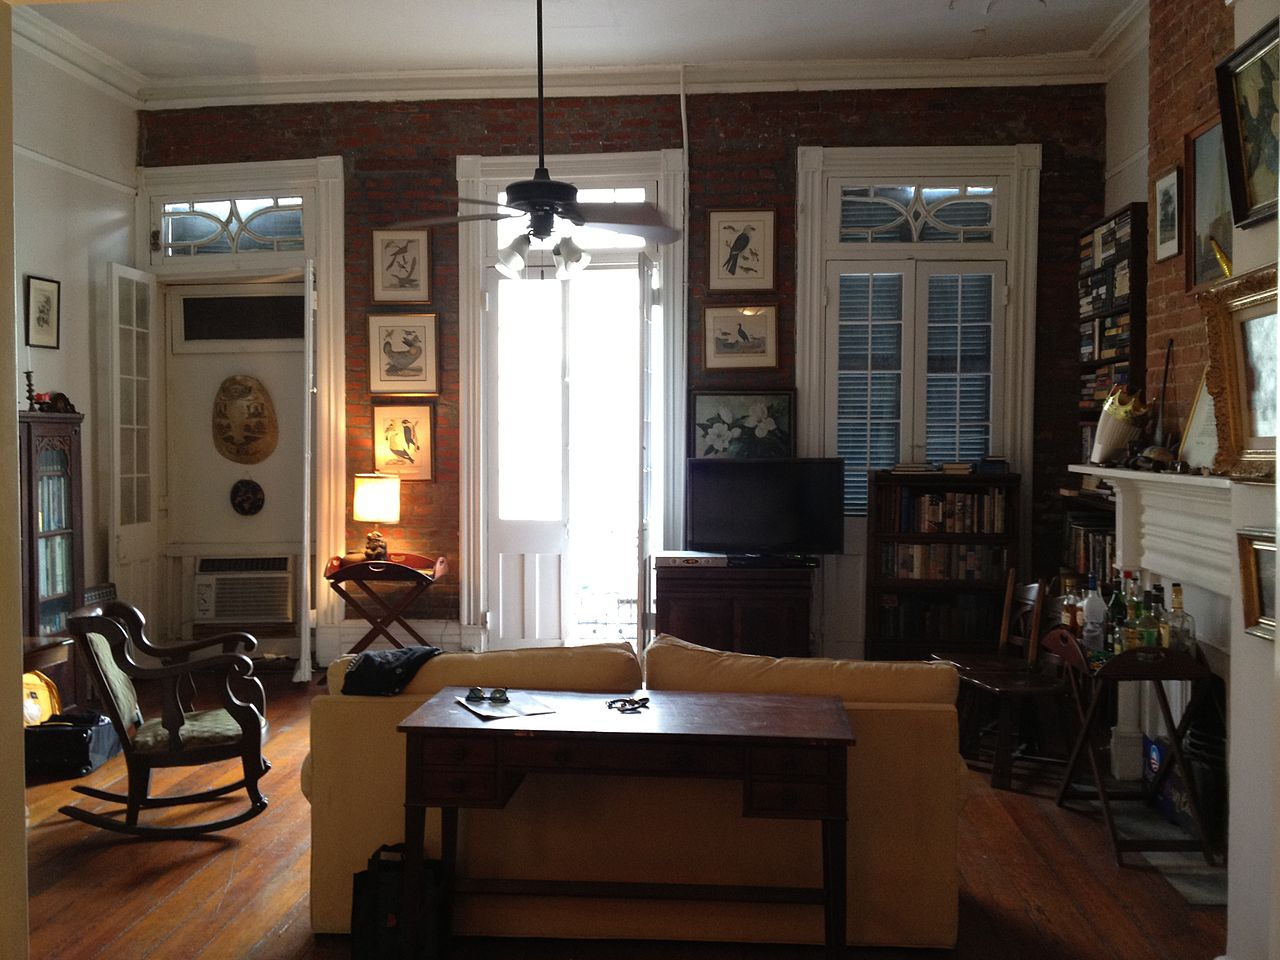 Apartment room tumblr - New York Apartment Tumblr File New Orleans French Quarter Apartment Living Room Jpg